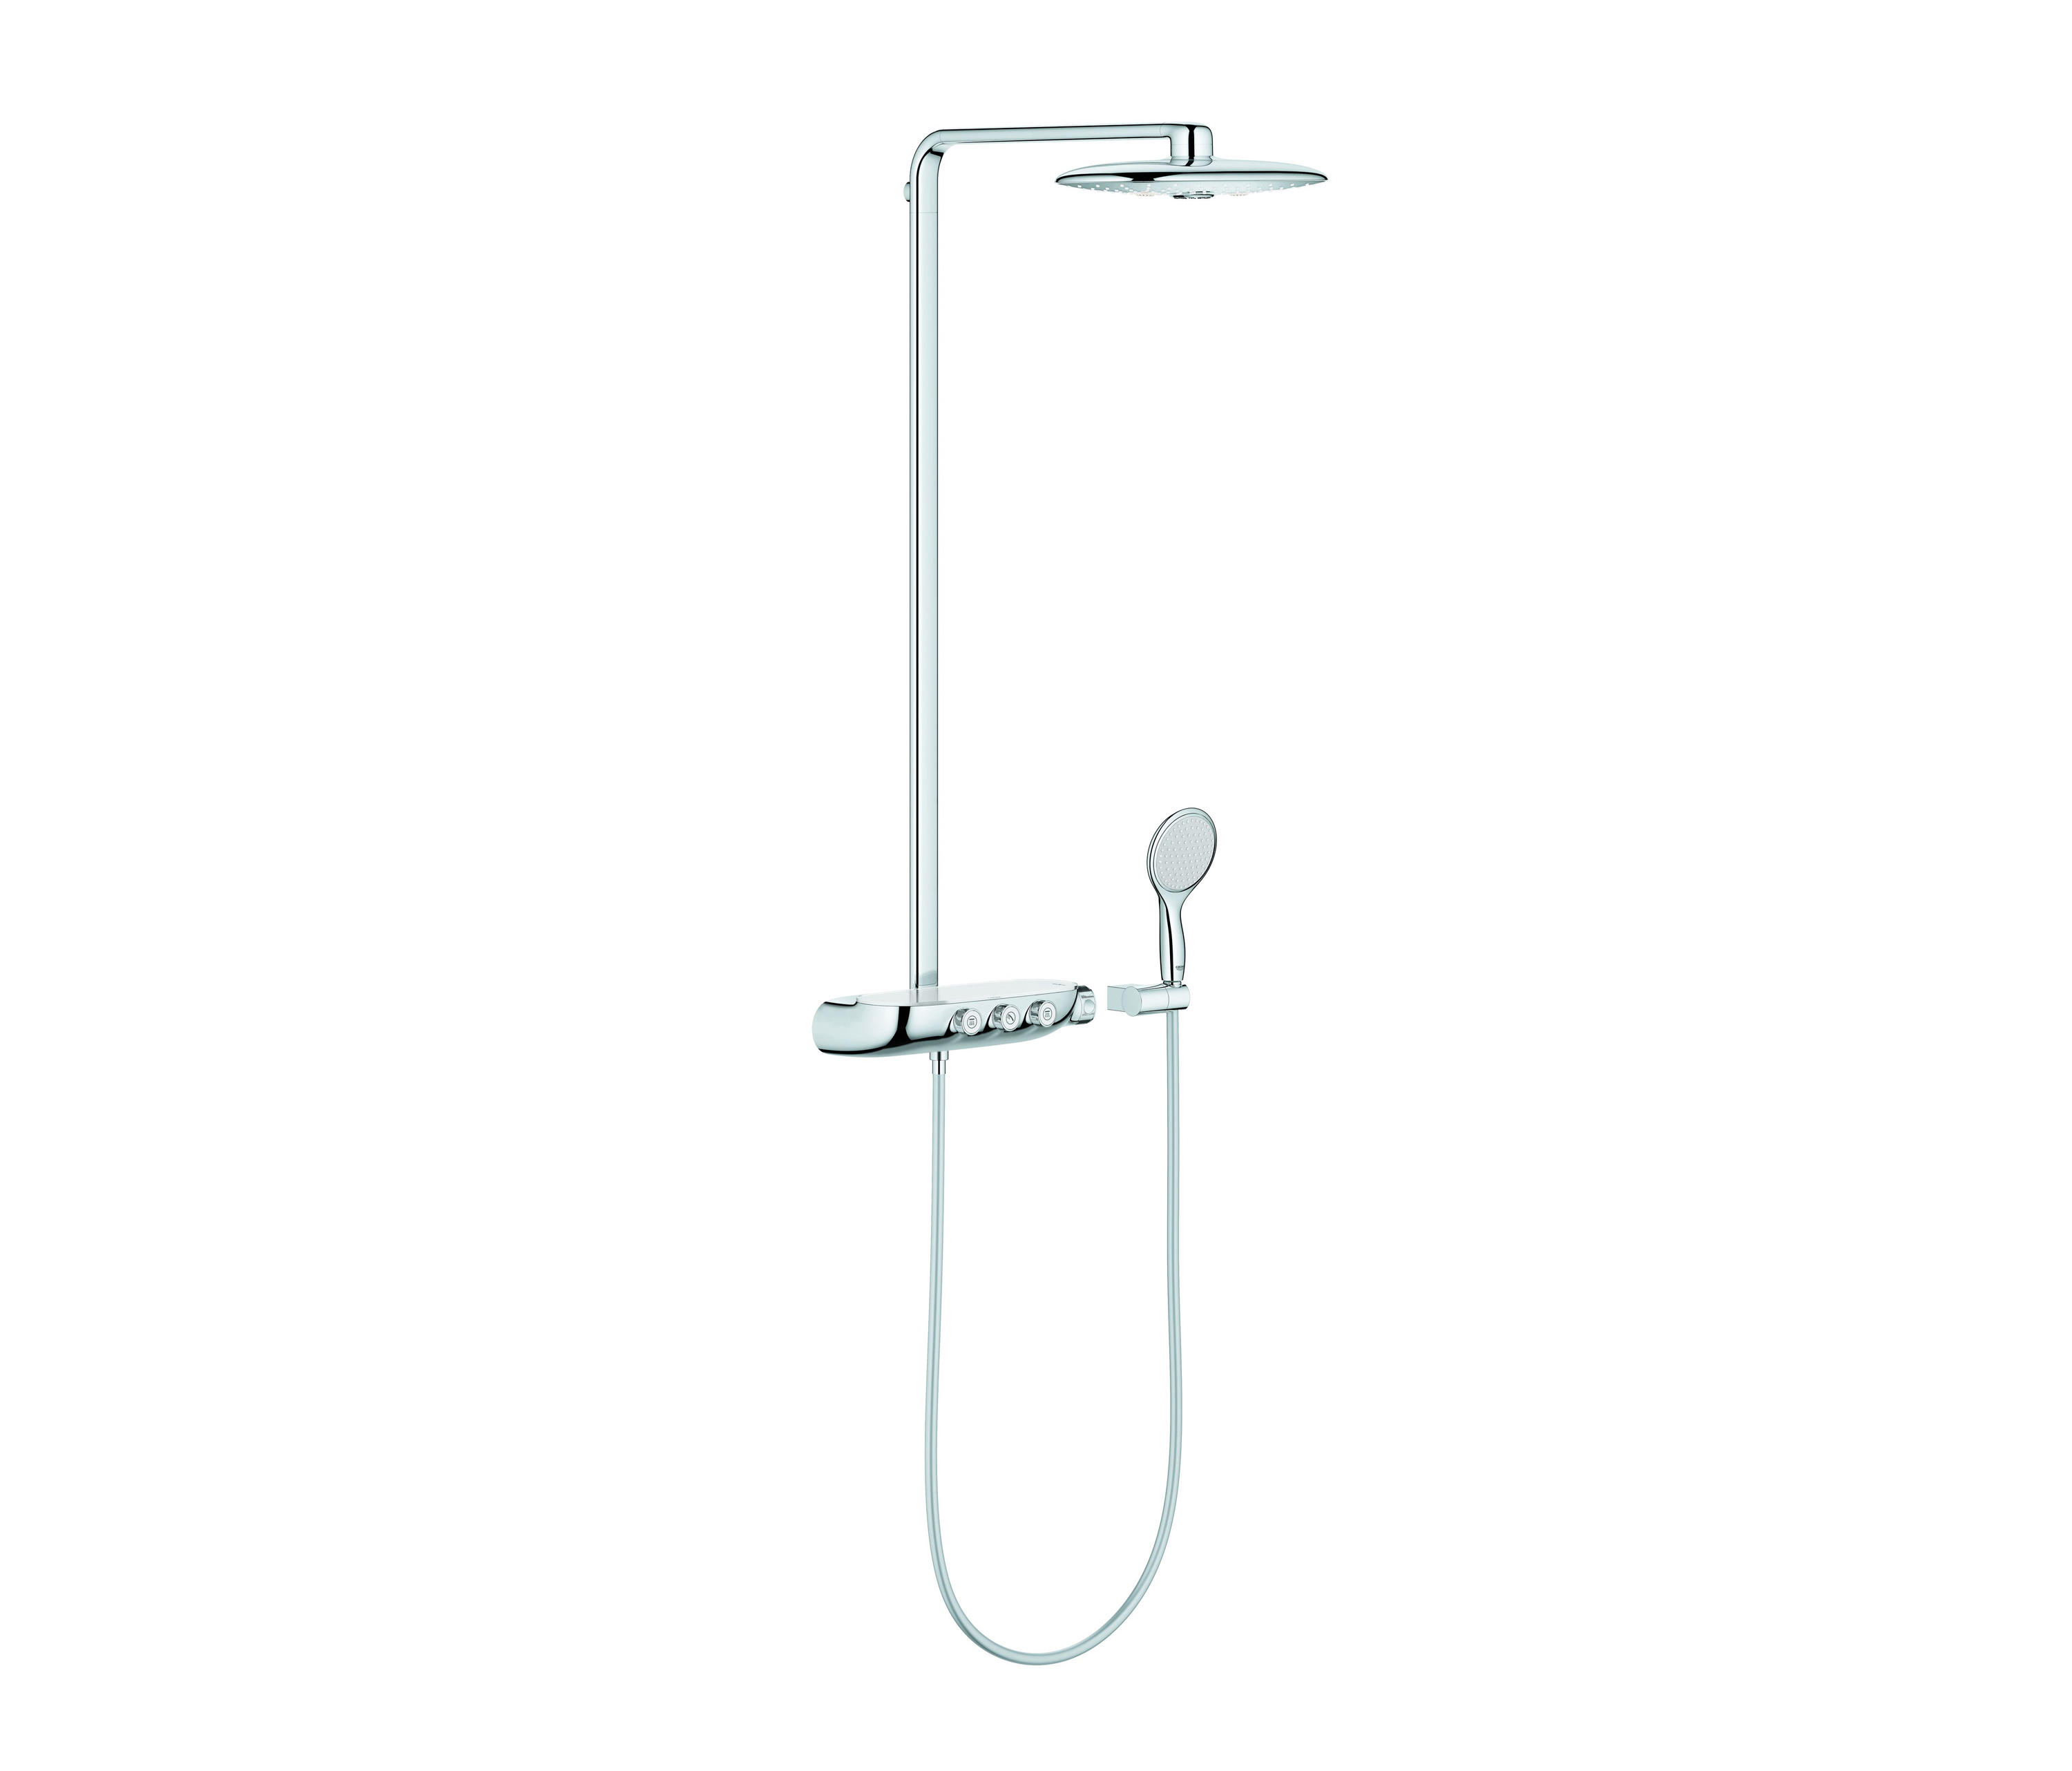 rainshower system smartcontrol 360 duo shower system with thermostat shower controls from grohe. Black Bedroom Furniture Sets. Home Design Ideas